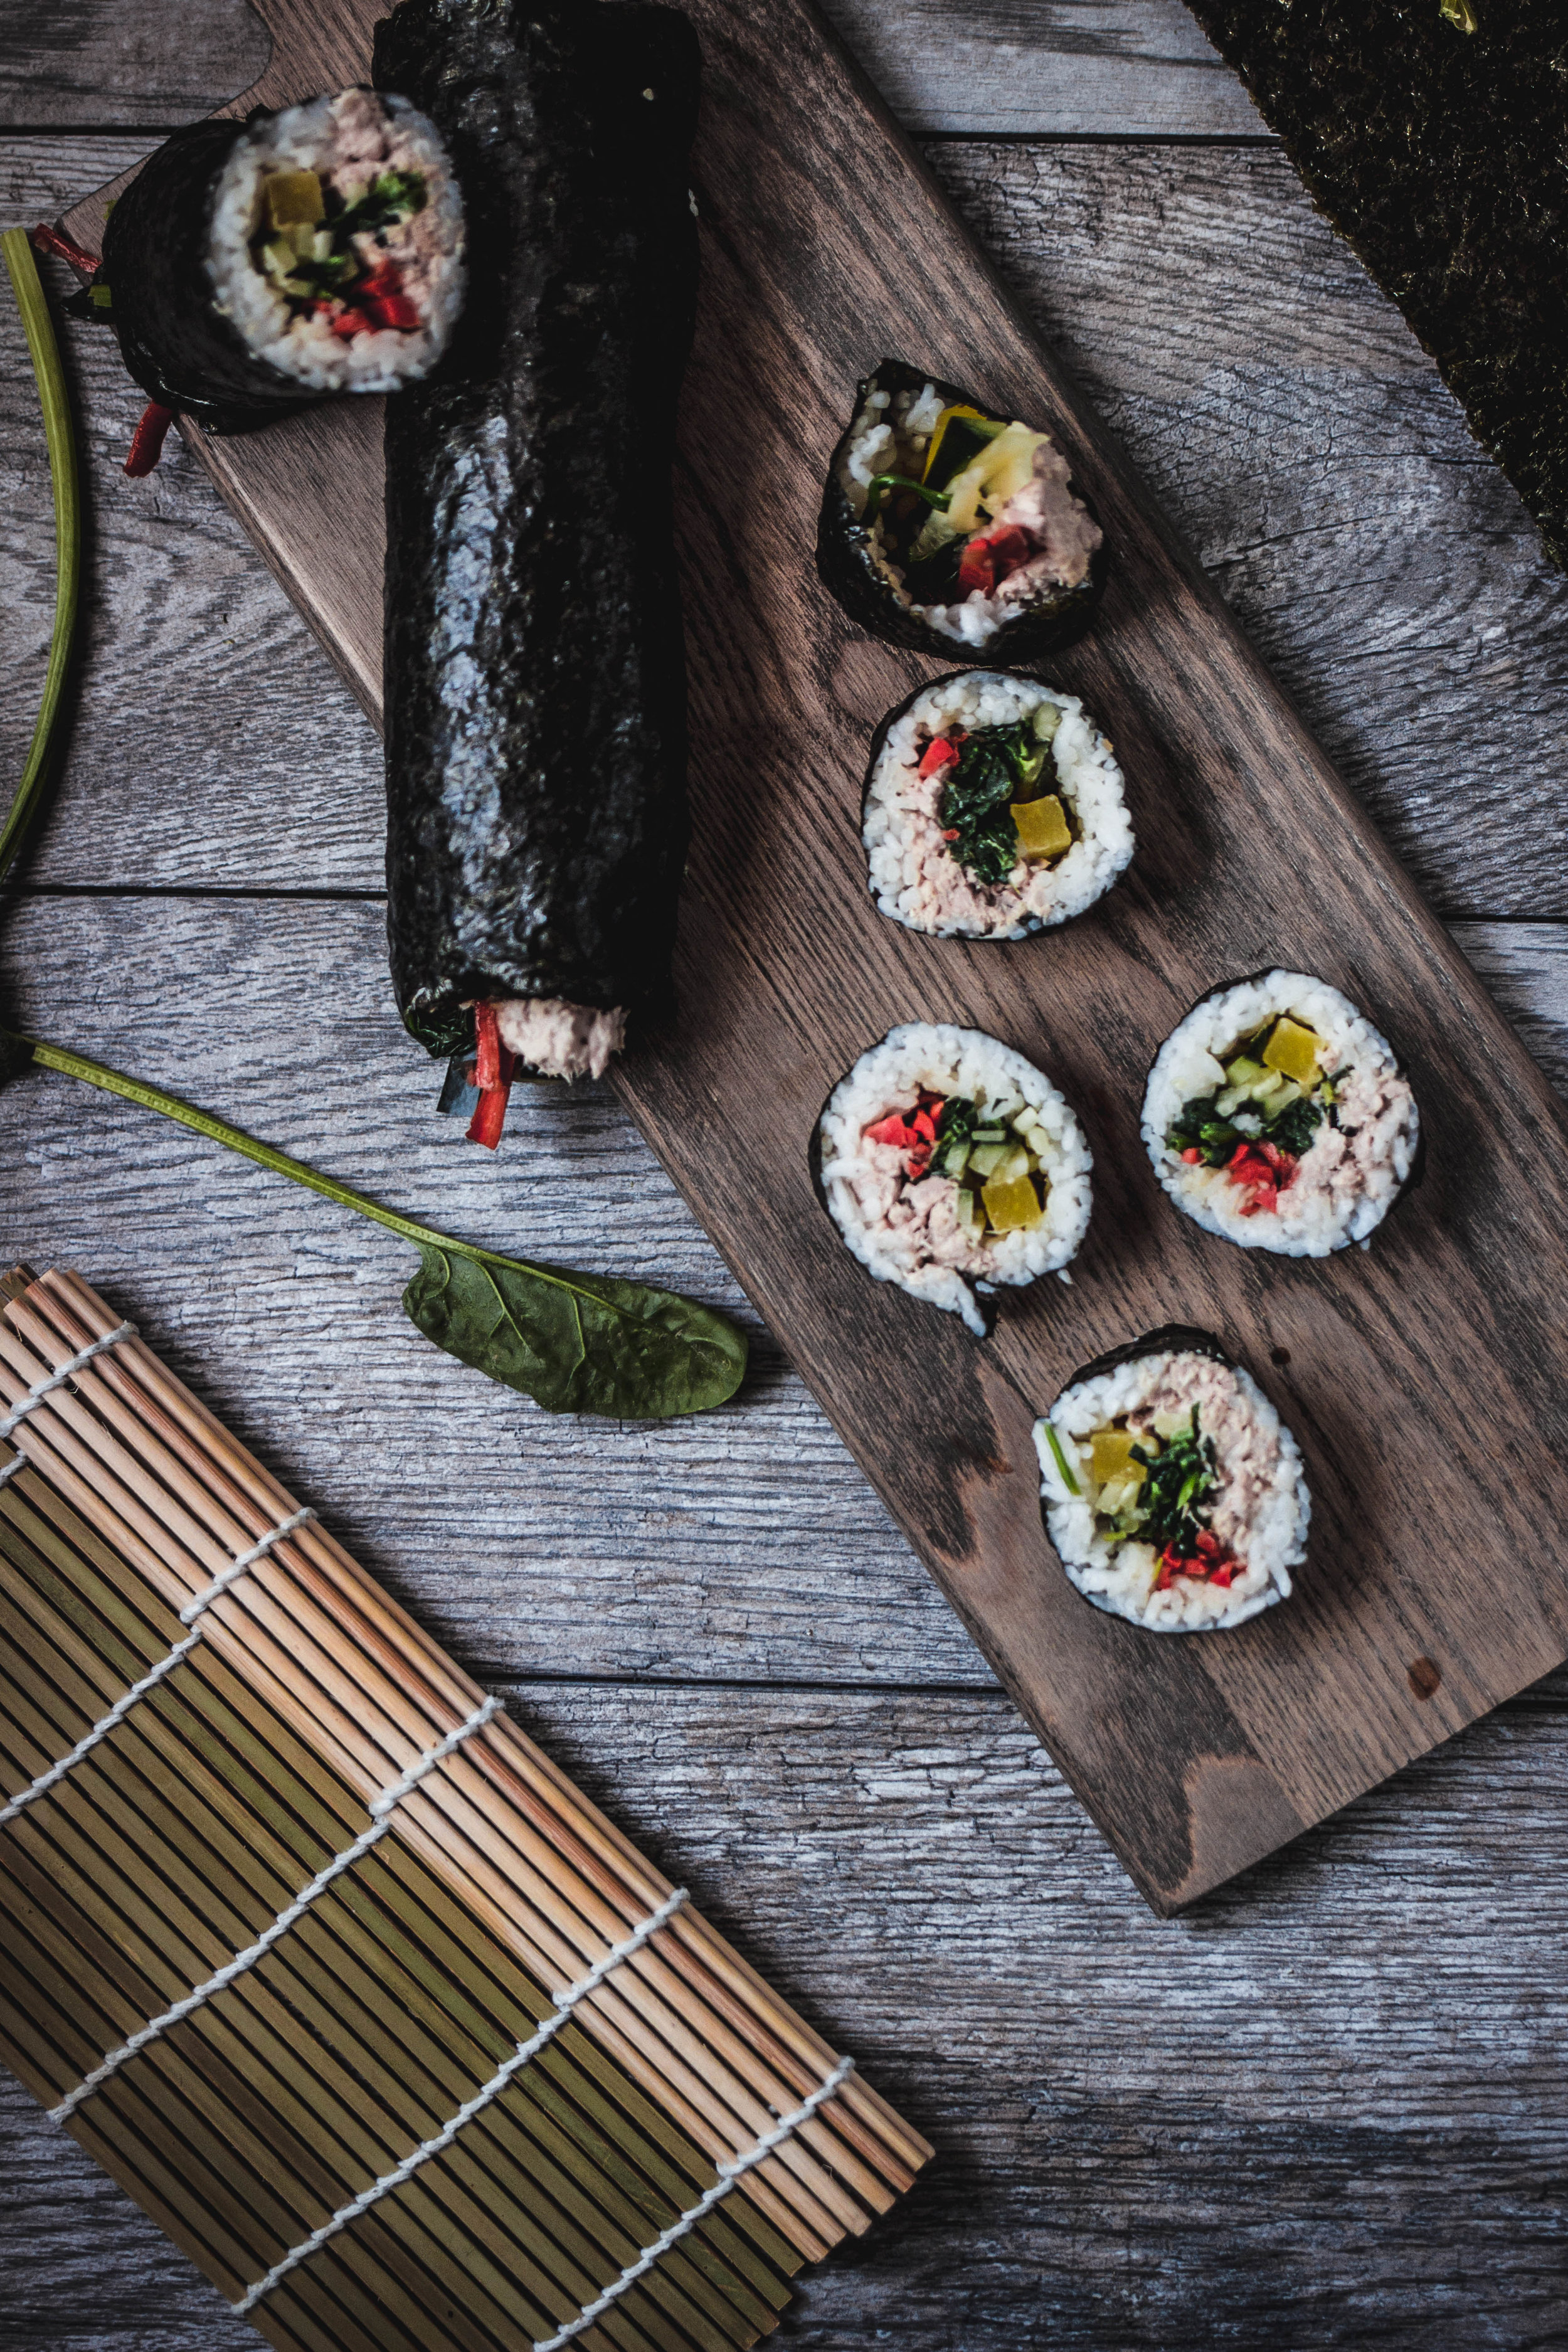 how to make tuna kimbap (cham-chee kimbap) step by step | from scratch, mostly